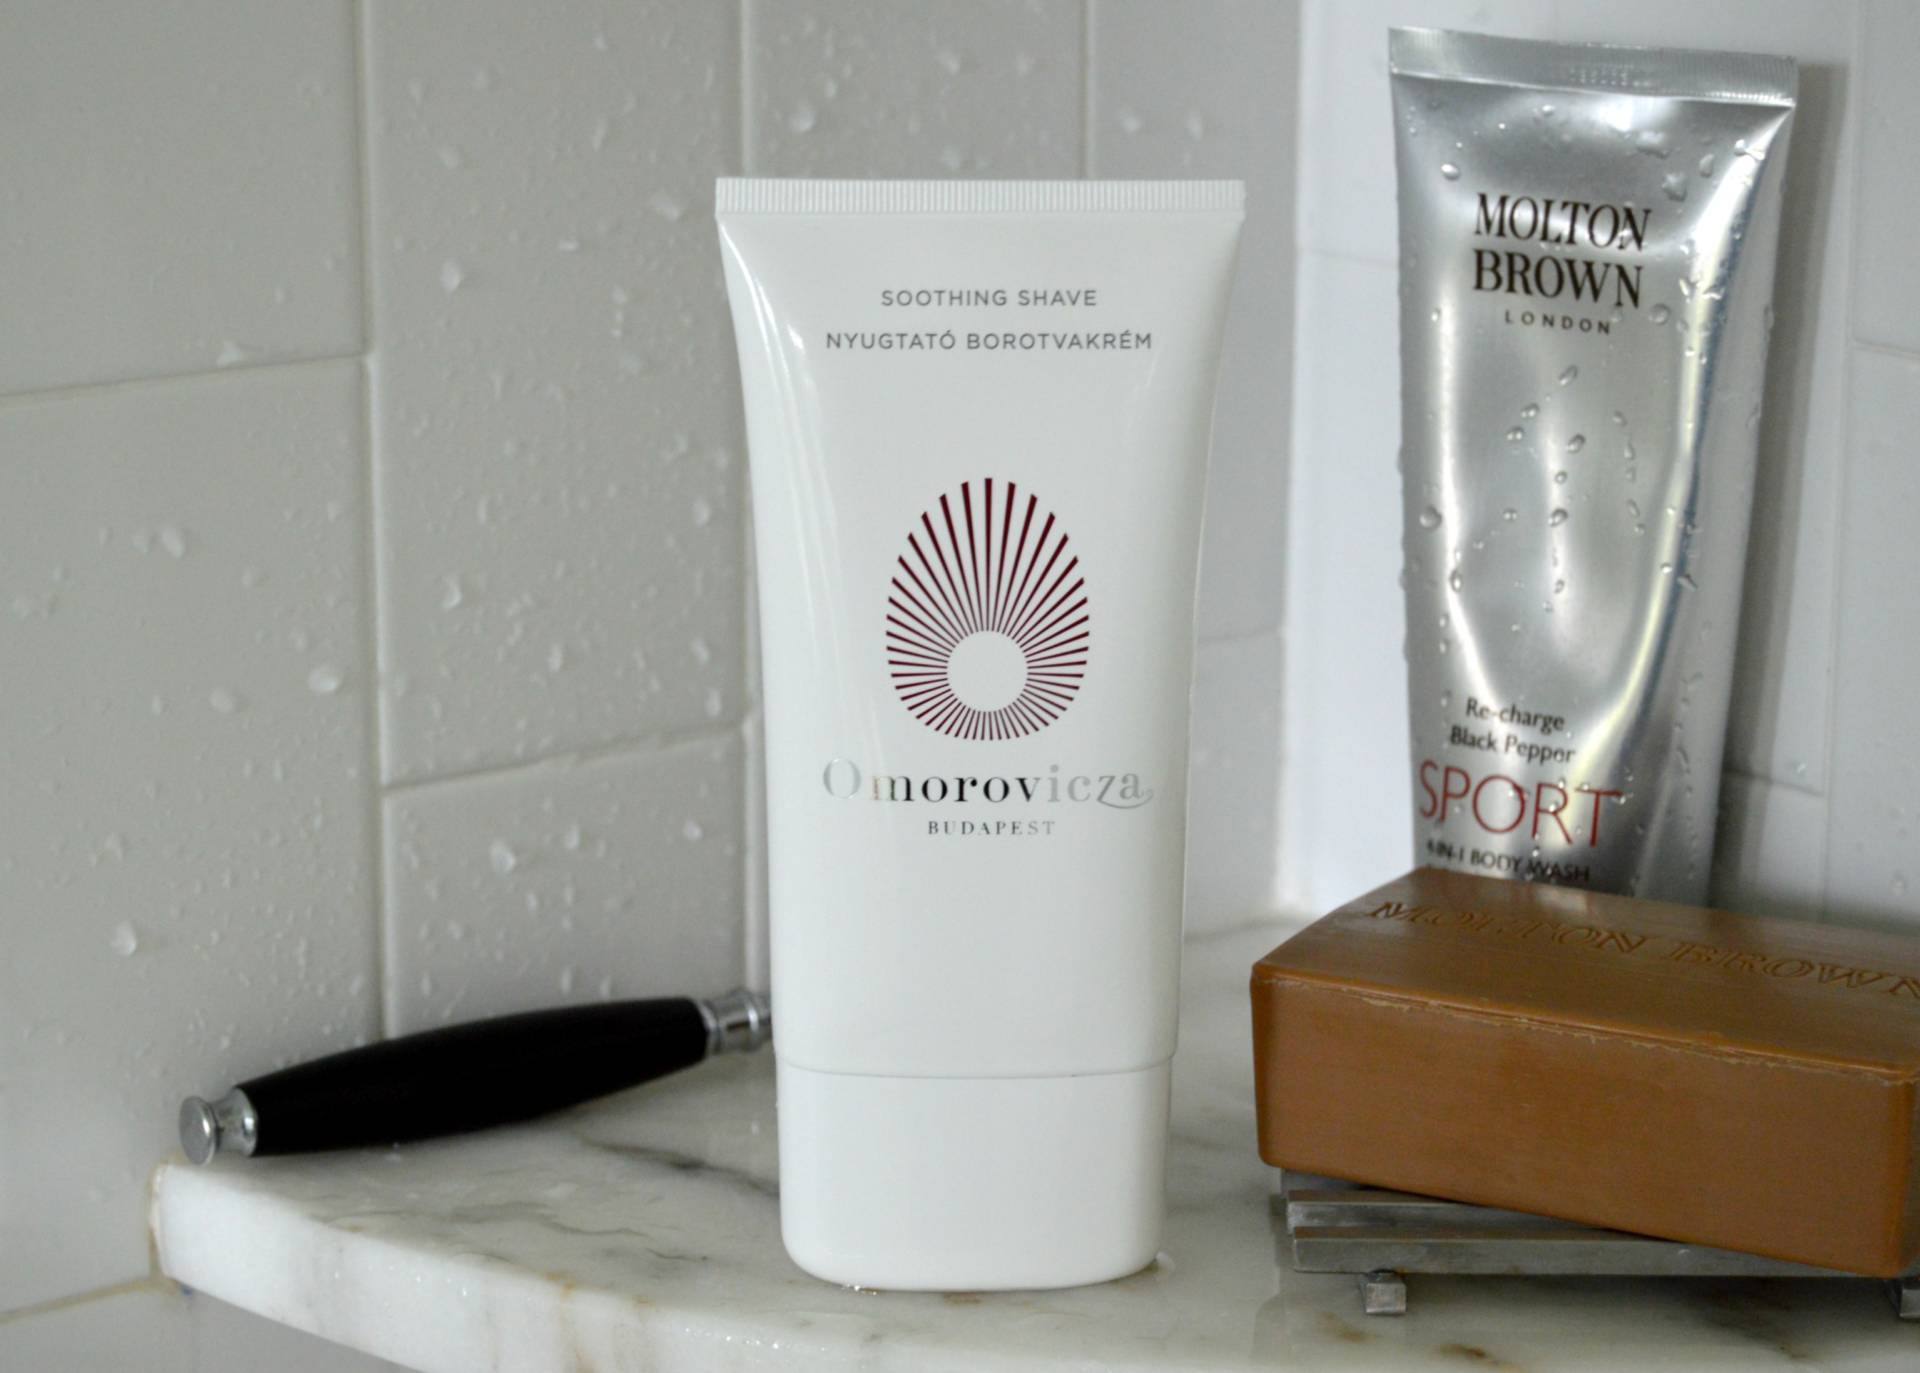 omorovicza soothing shave neiman marcus inhautepursuit national mens grooming day review